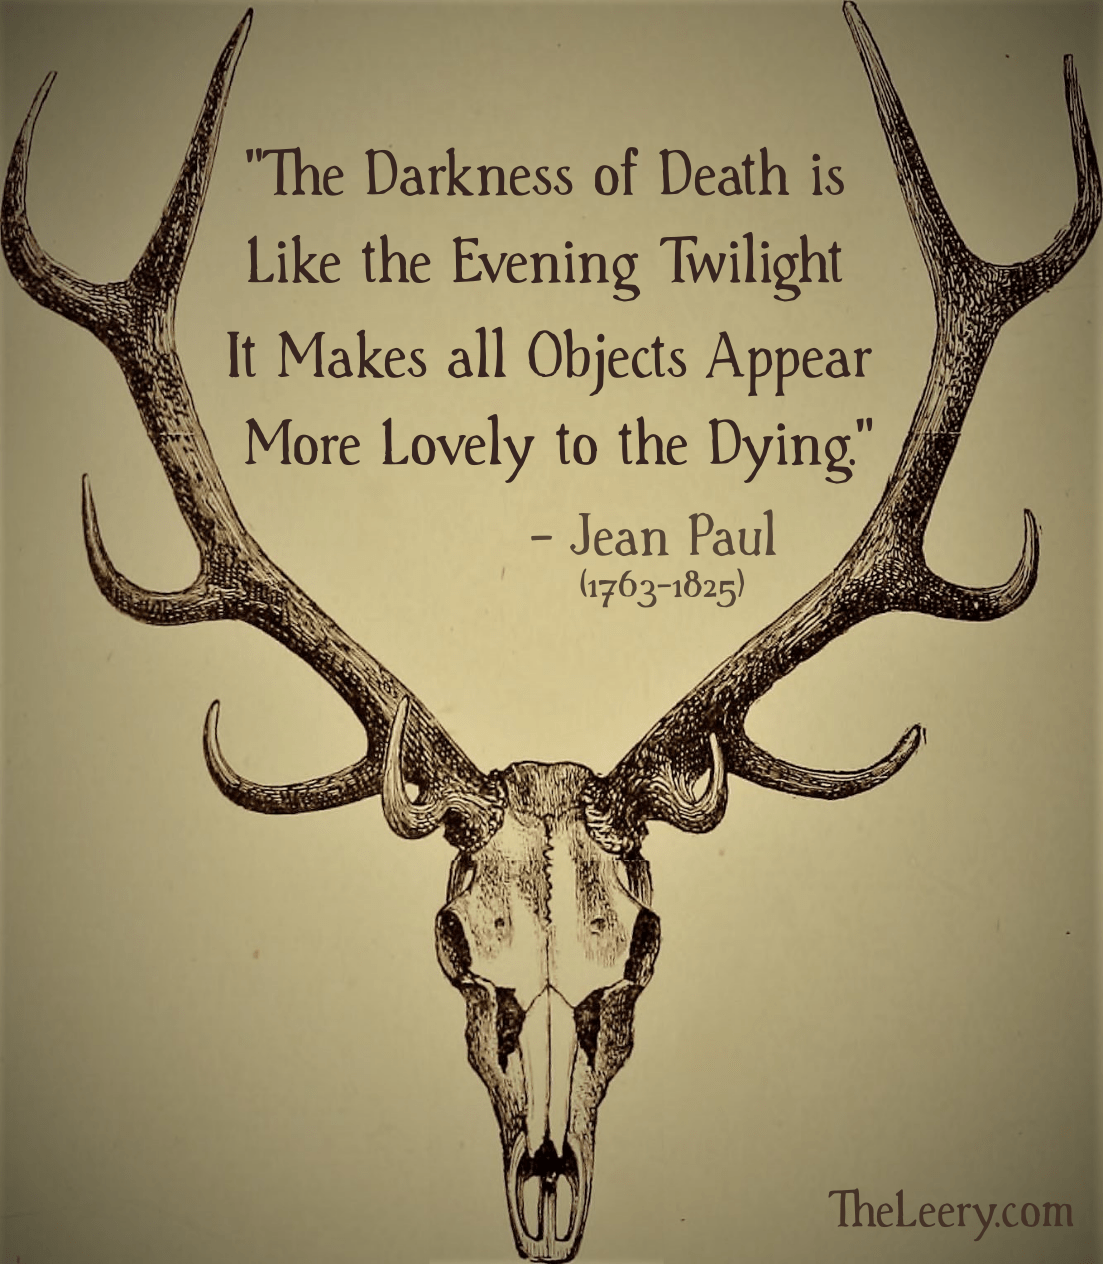 fl'Tbe Darkness of Death 13 \\ / Like the Evening Twilight It Makes all Objects Appear — Jean Paul (1763—1825) '''''''' https://inspirational.ly